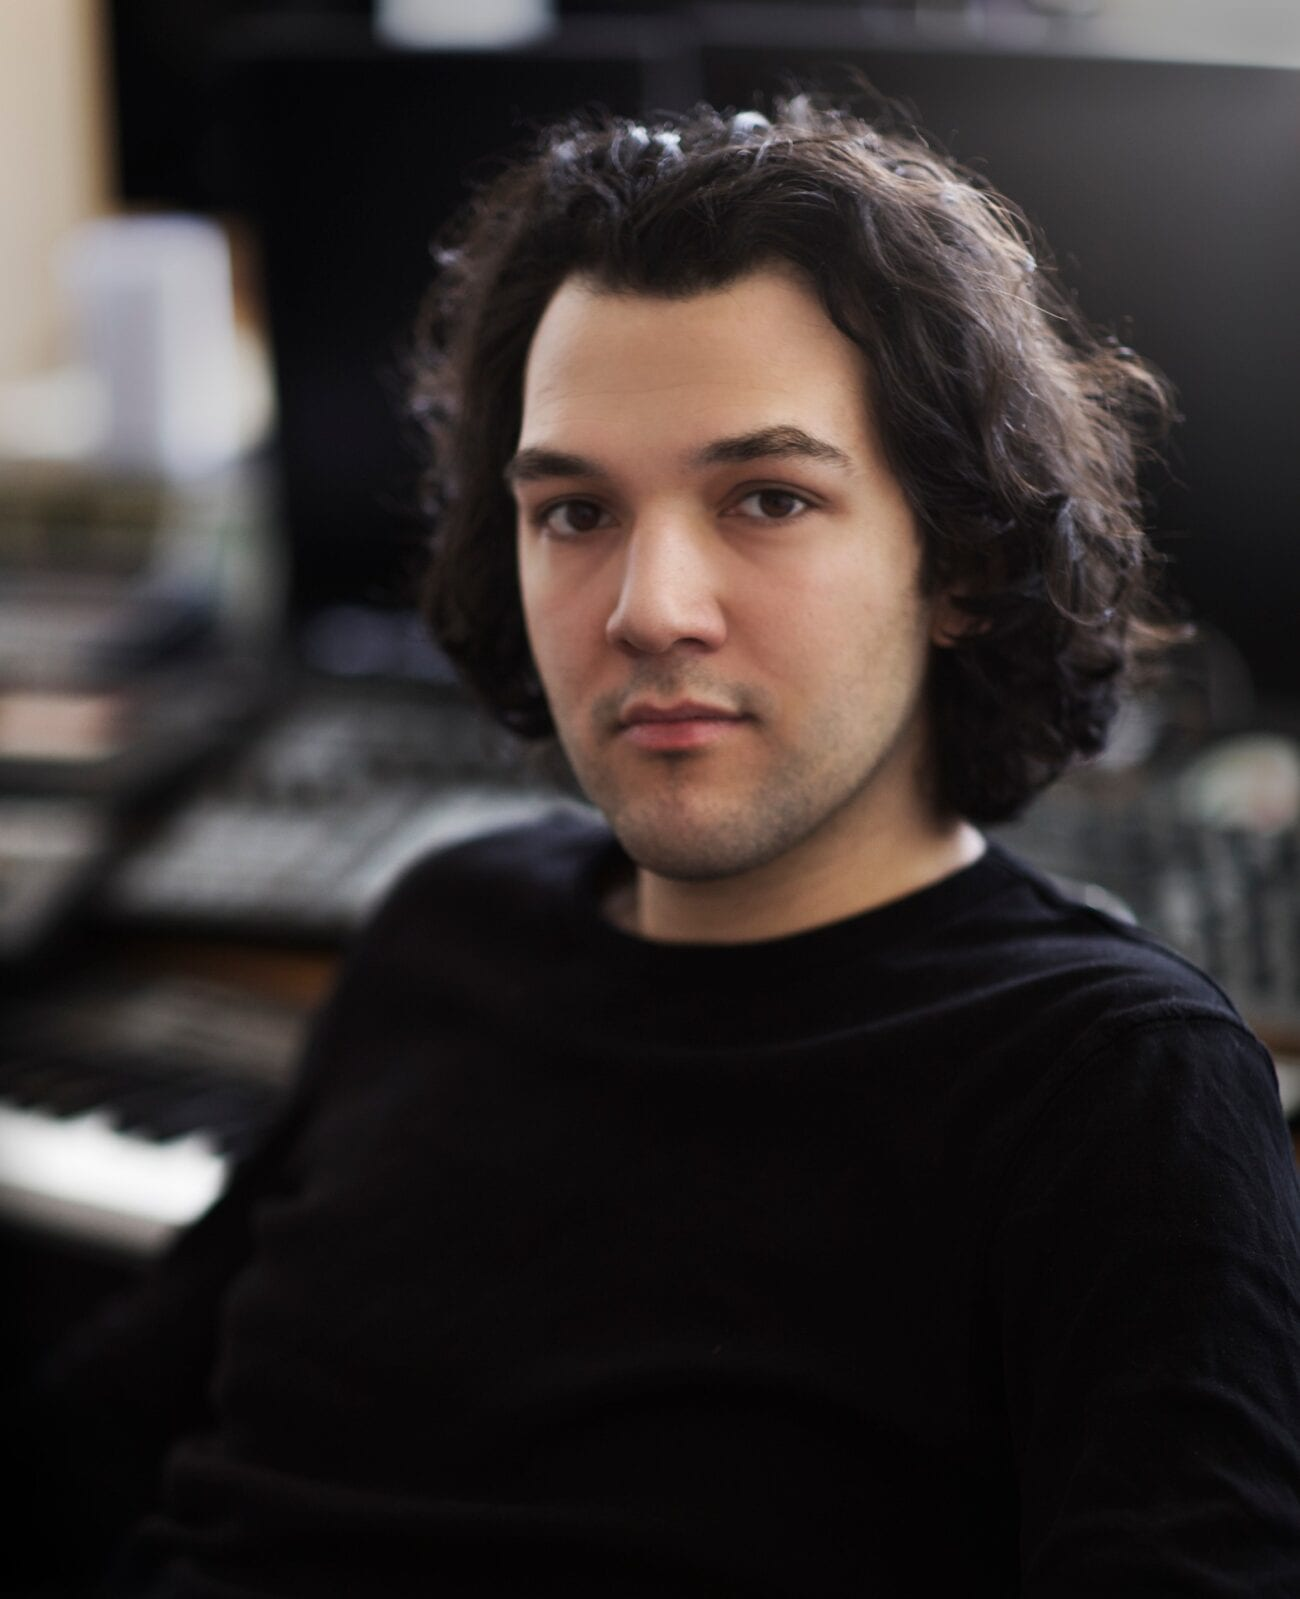 Enis Rotthoff is a very accomplished film composer. We talked to him about his eclectic style and his new film 'Love Sarah'.